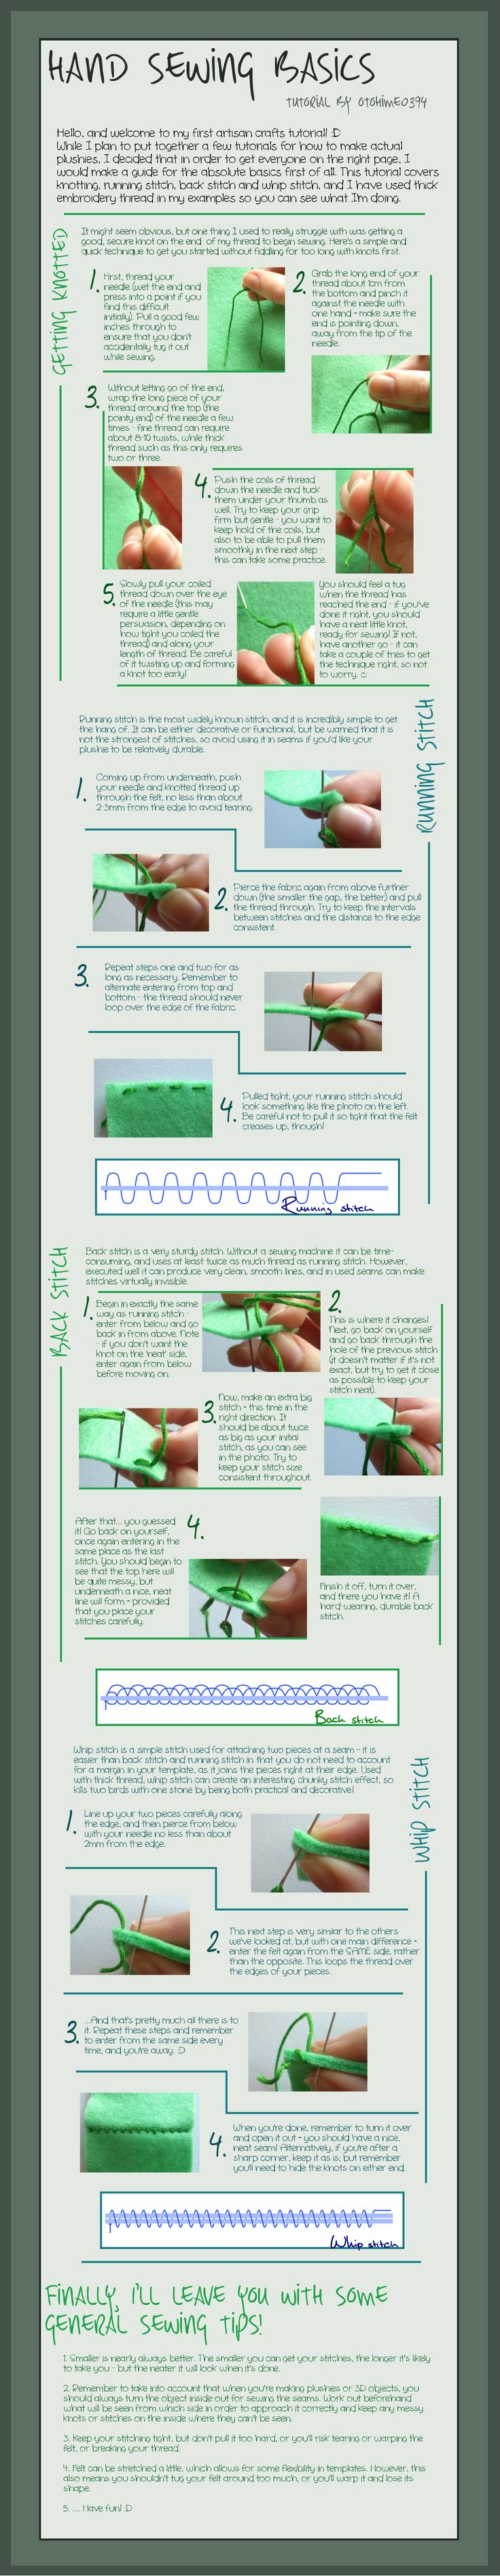 Small hand saw for crafts - Hand Sewing Basics Tutorial By Otohime0394 On Deviantart